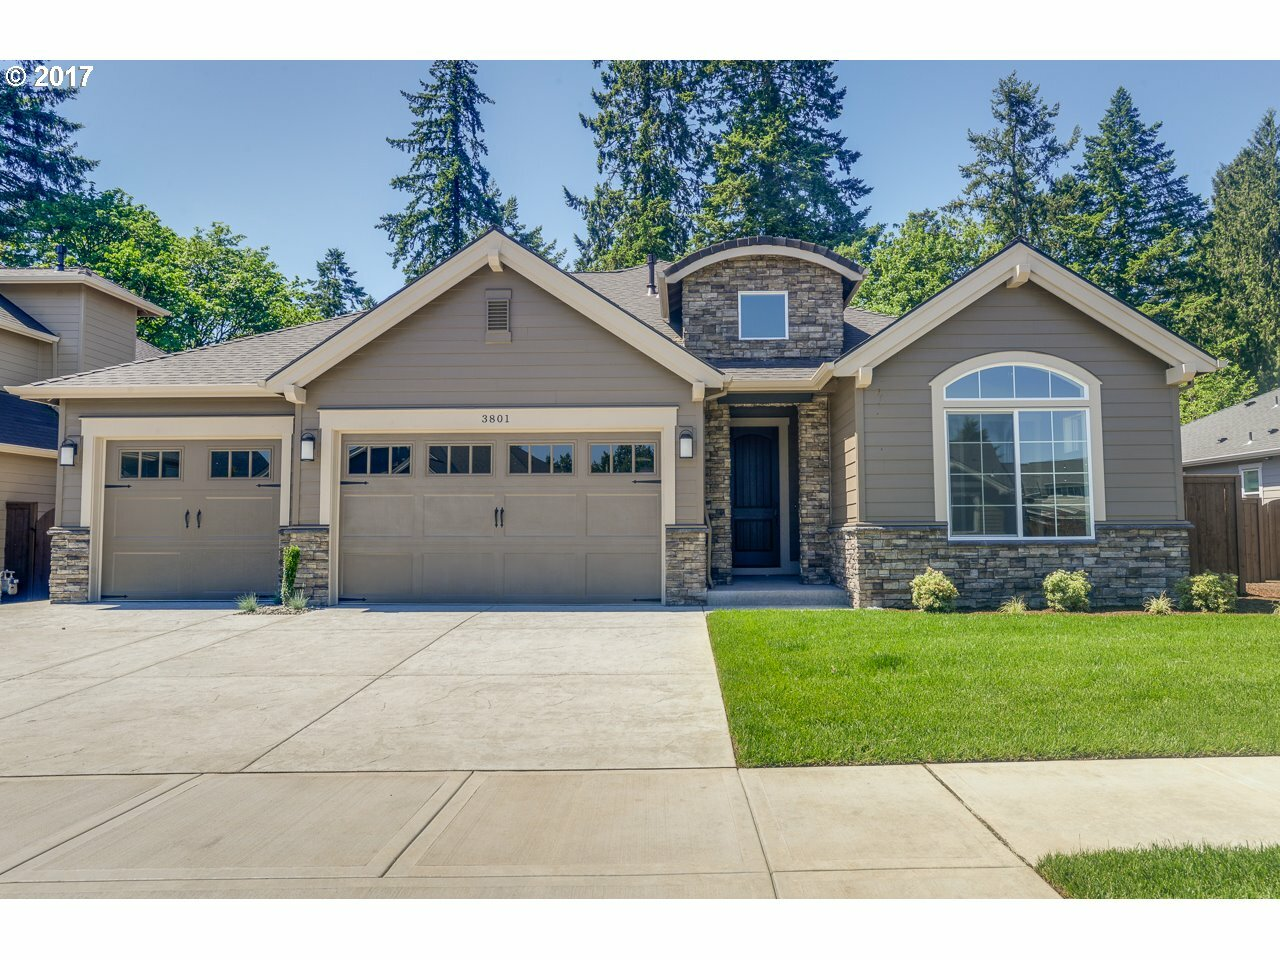 3801 Se Pipers Dr, Hillsboro, OR - USA (photo 1)